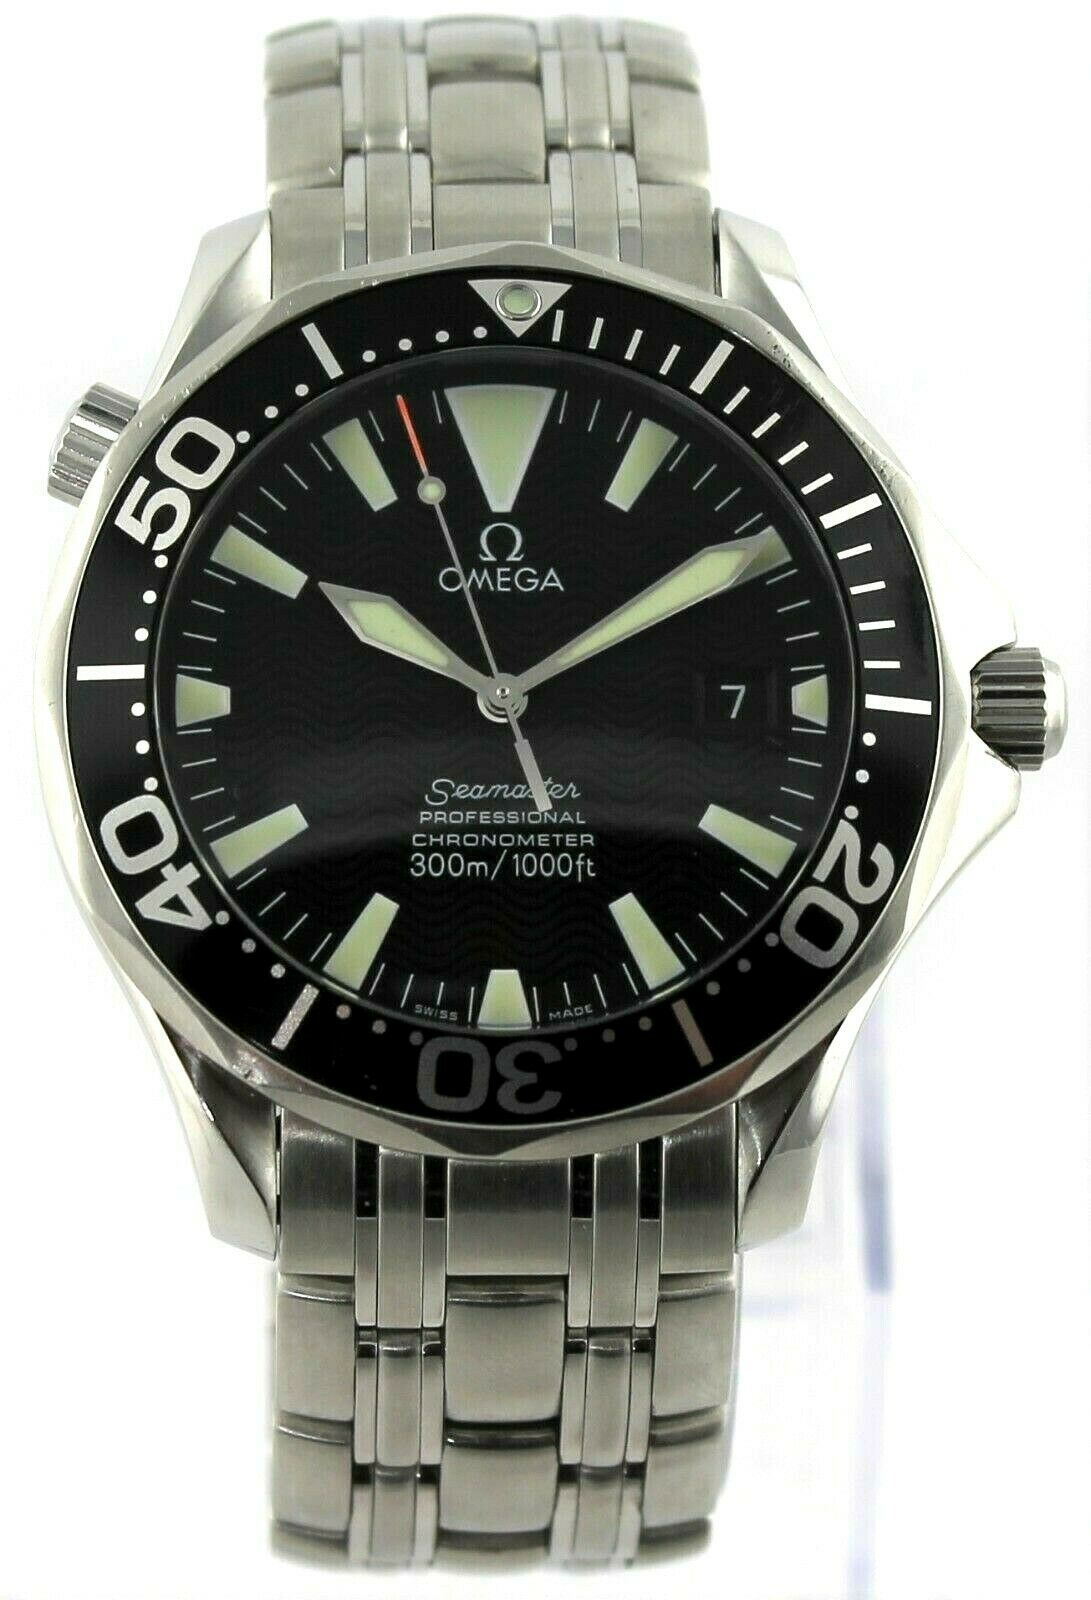 OMEGA SEAMASTER 2054.50 PROFESSIONAL AUTOMATIC LARGE CHRONOMETER BLACK WATCH